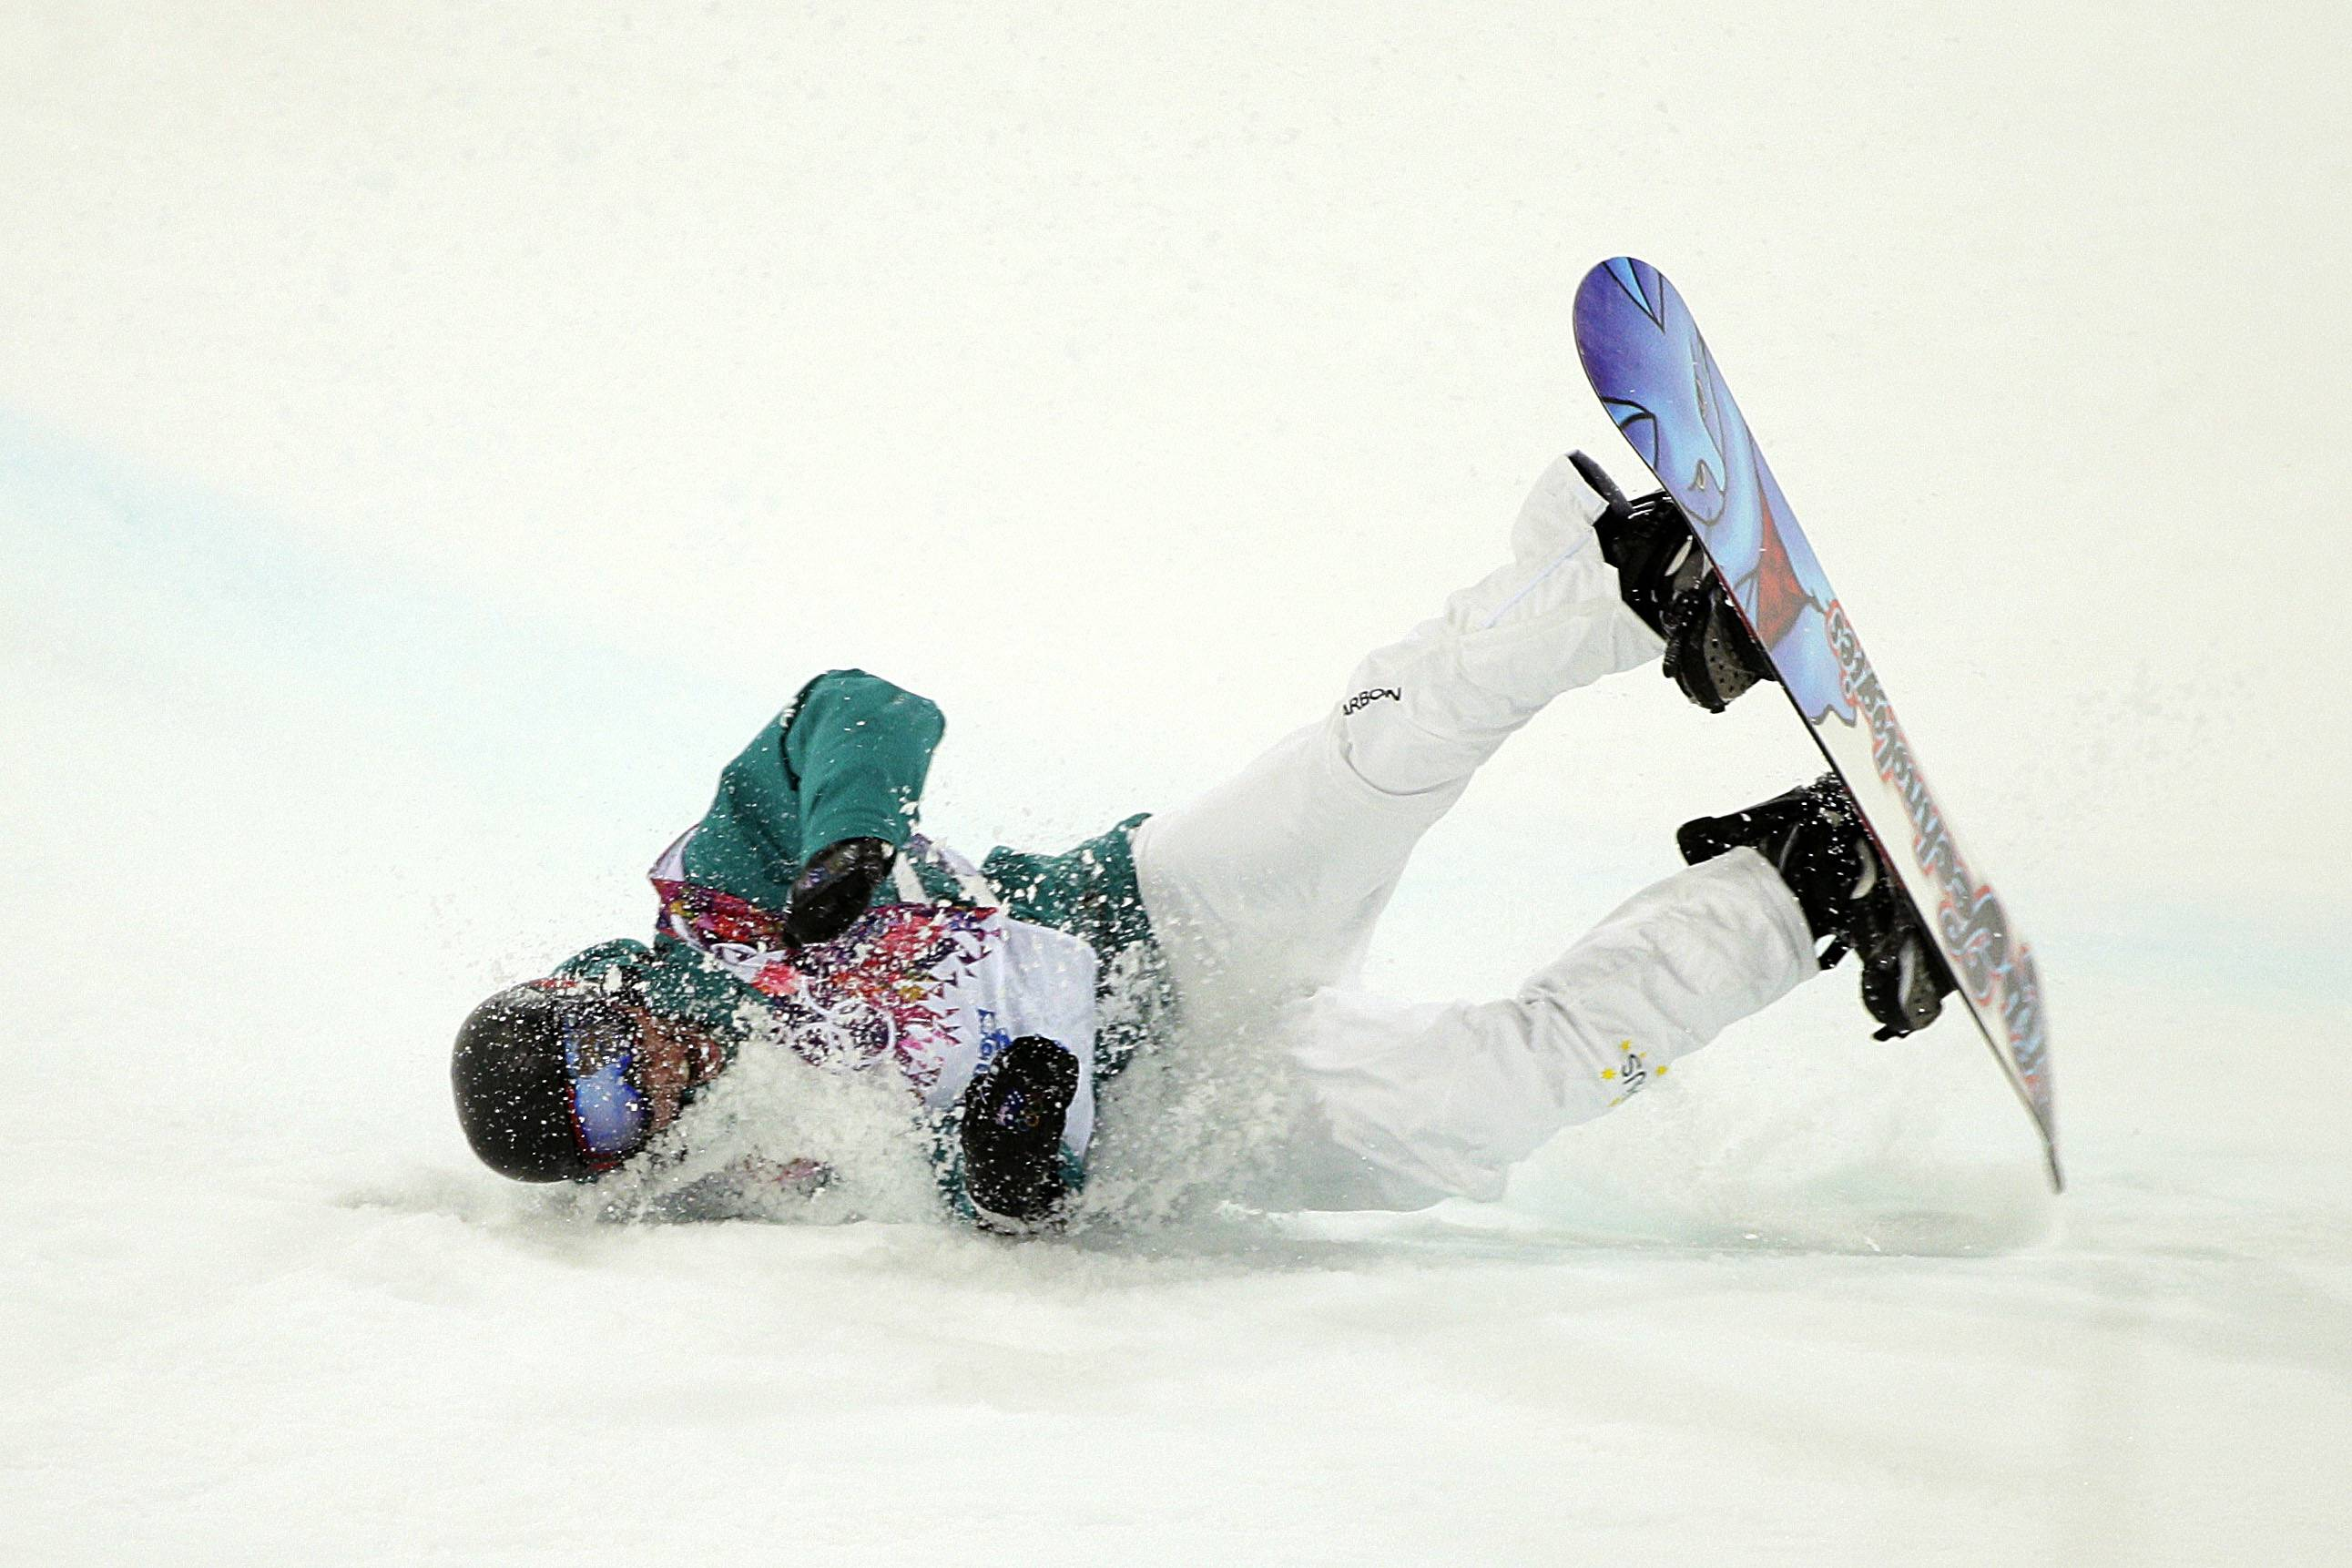 Australia's Kent Callister crashes during the men's snowboard halfpipe final.